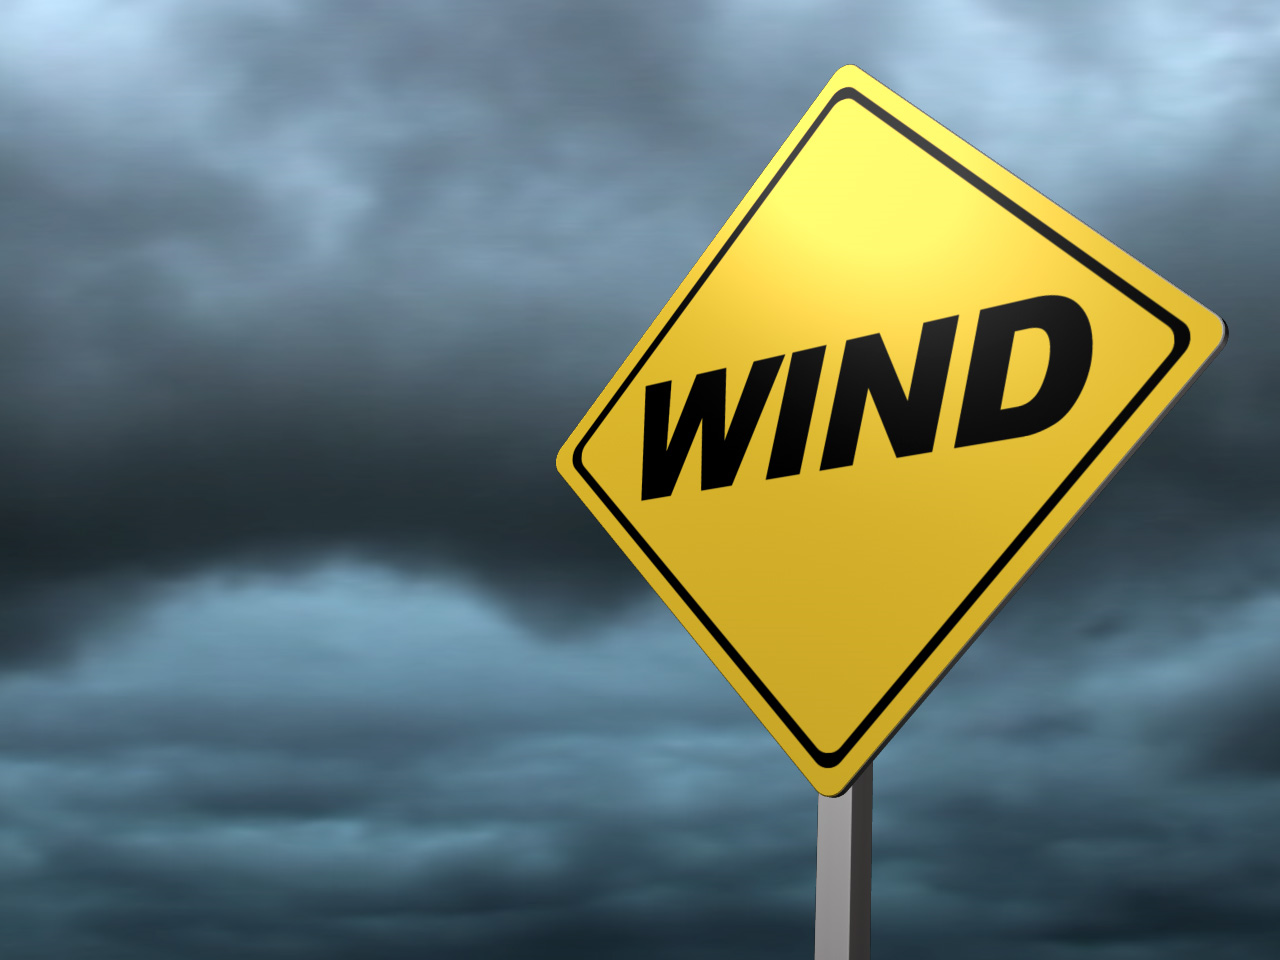 WIND ADVISORY UNTIL 2 PM — Metro Detroit Weather